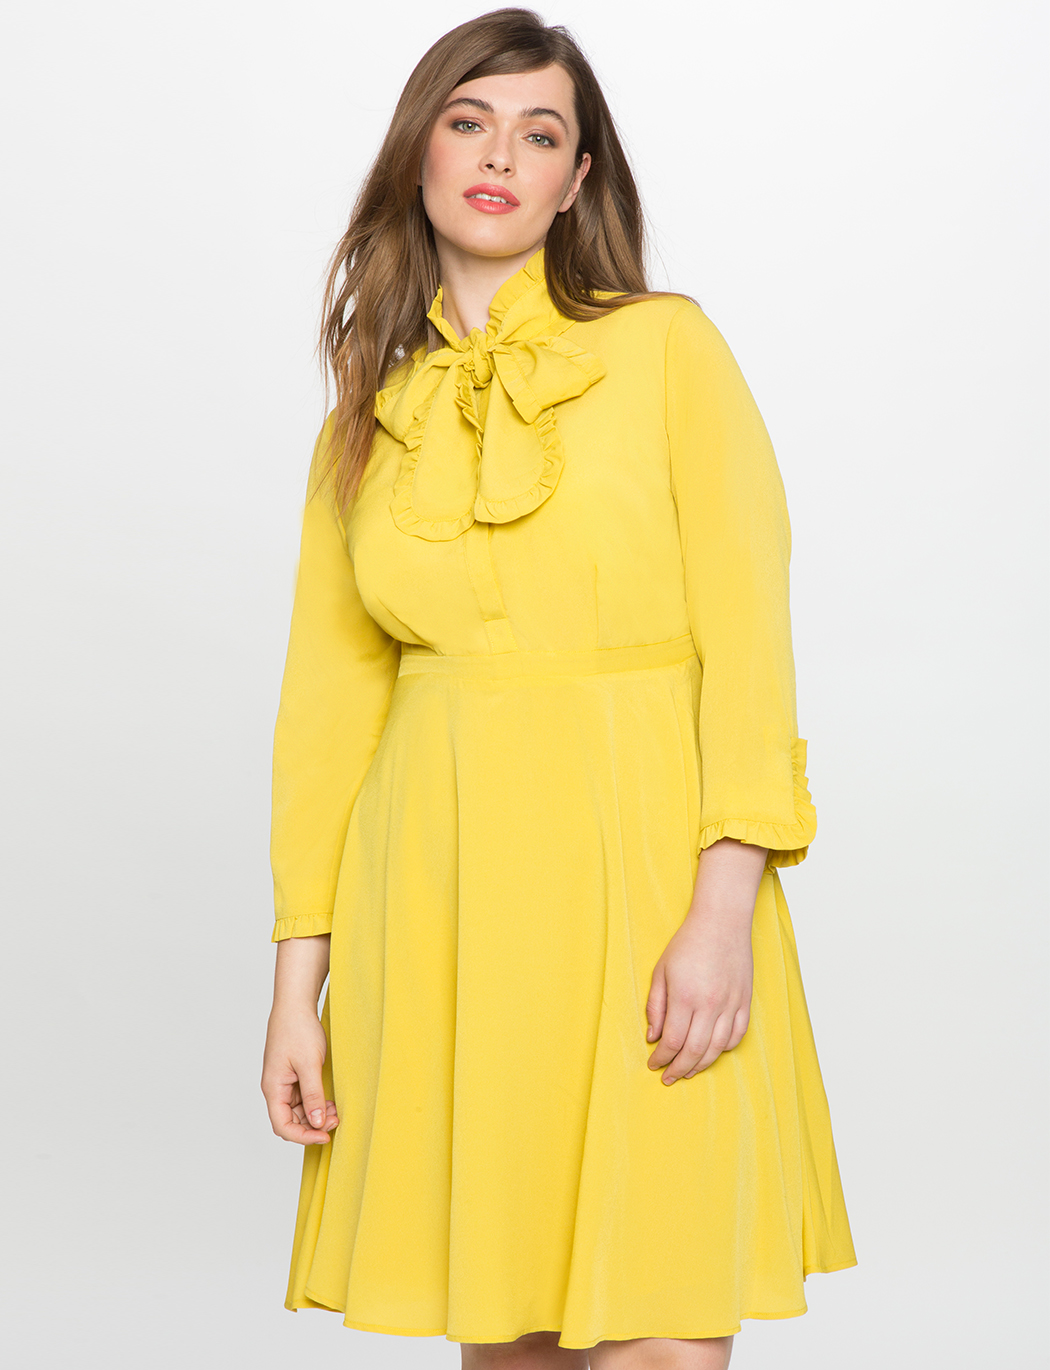 Bow Neck Fit and Flare Shirt Dress | Women\'s Plus Size Dresses | ELOQUII